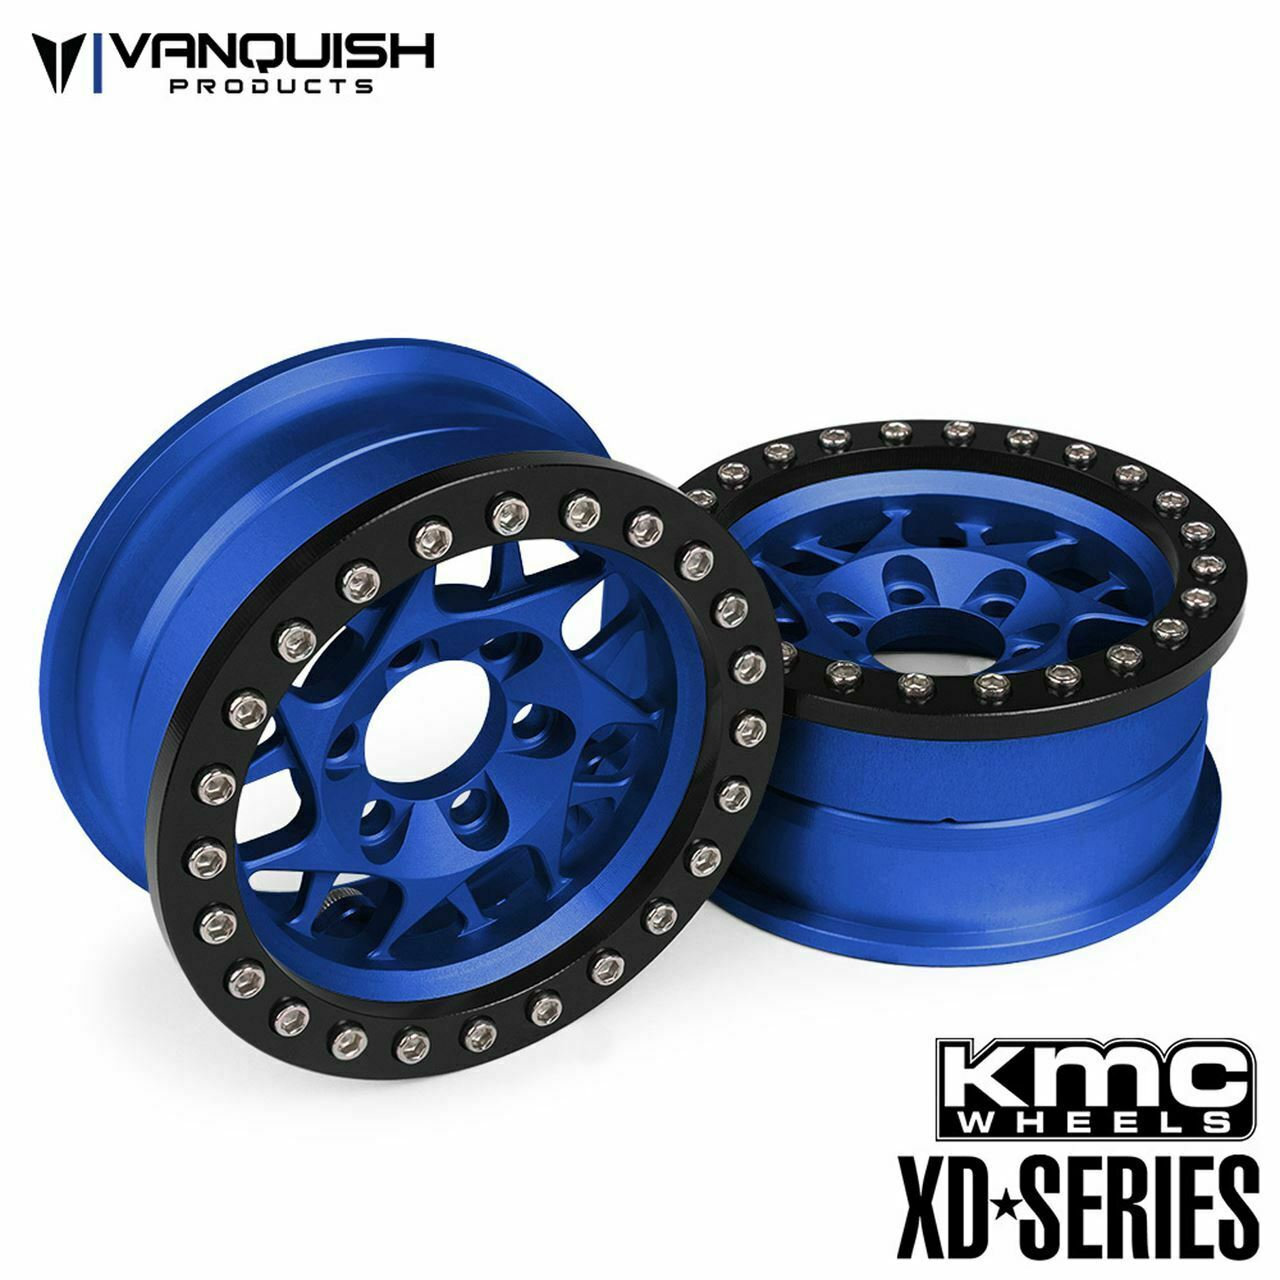 Vanquish  Products VPS07714 Kmc 1.9 Xd 127 Bully Blu Anodizzato  acquisti online